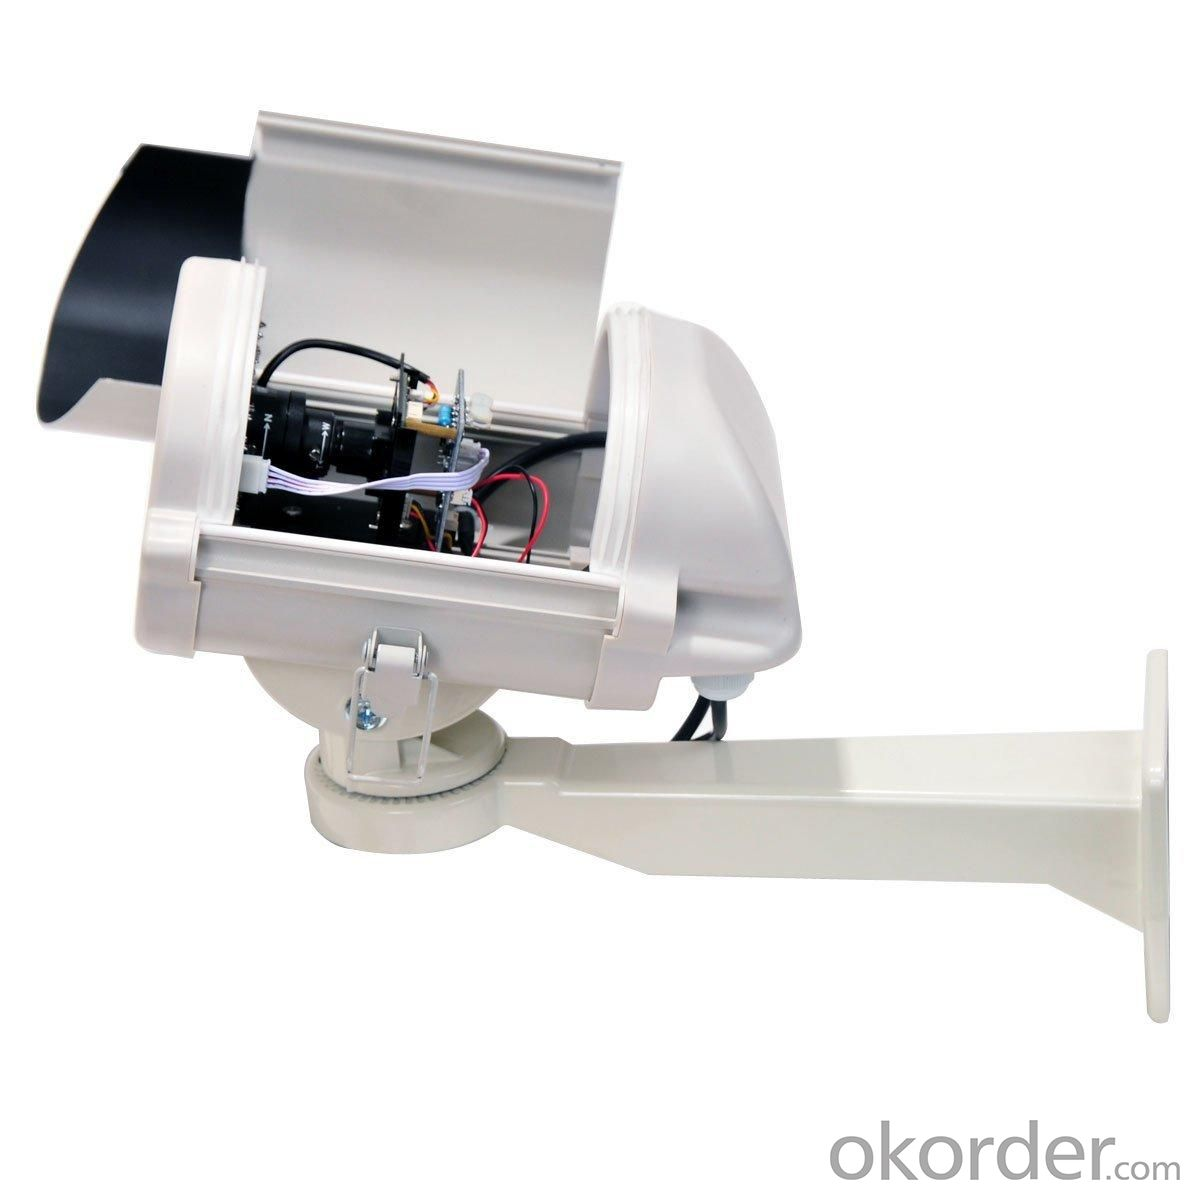 Outdoor Infrared Camera Series FLY-3031